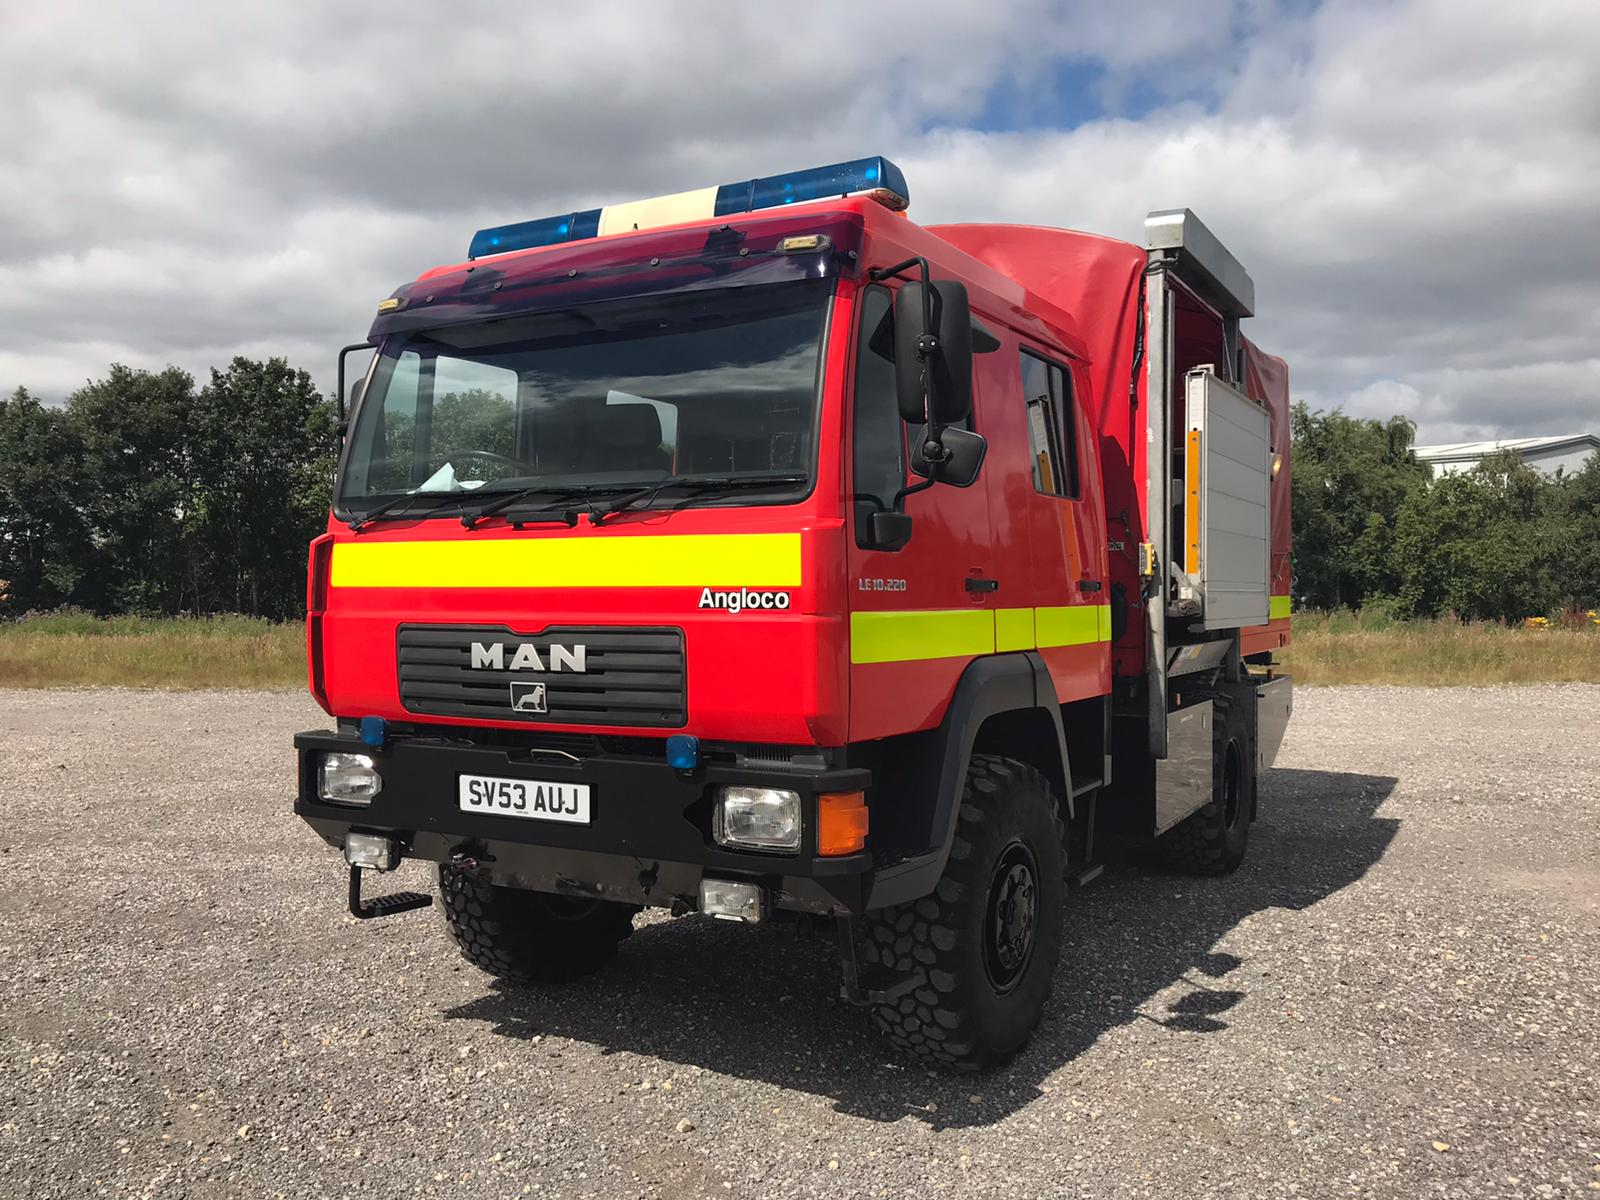 military vehicles for sale - MAN LE 10.220 4x4 Crew Cab Truck (Not a Fire Engine)